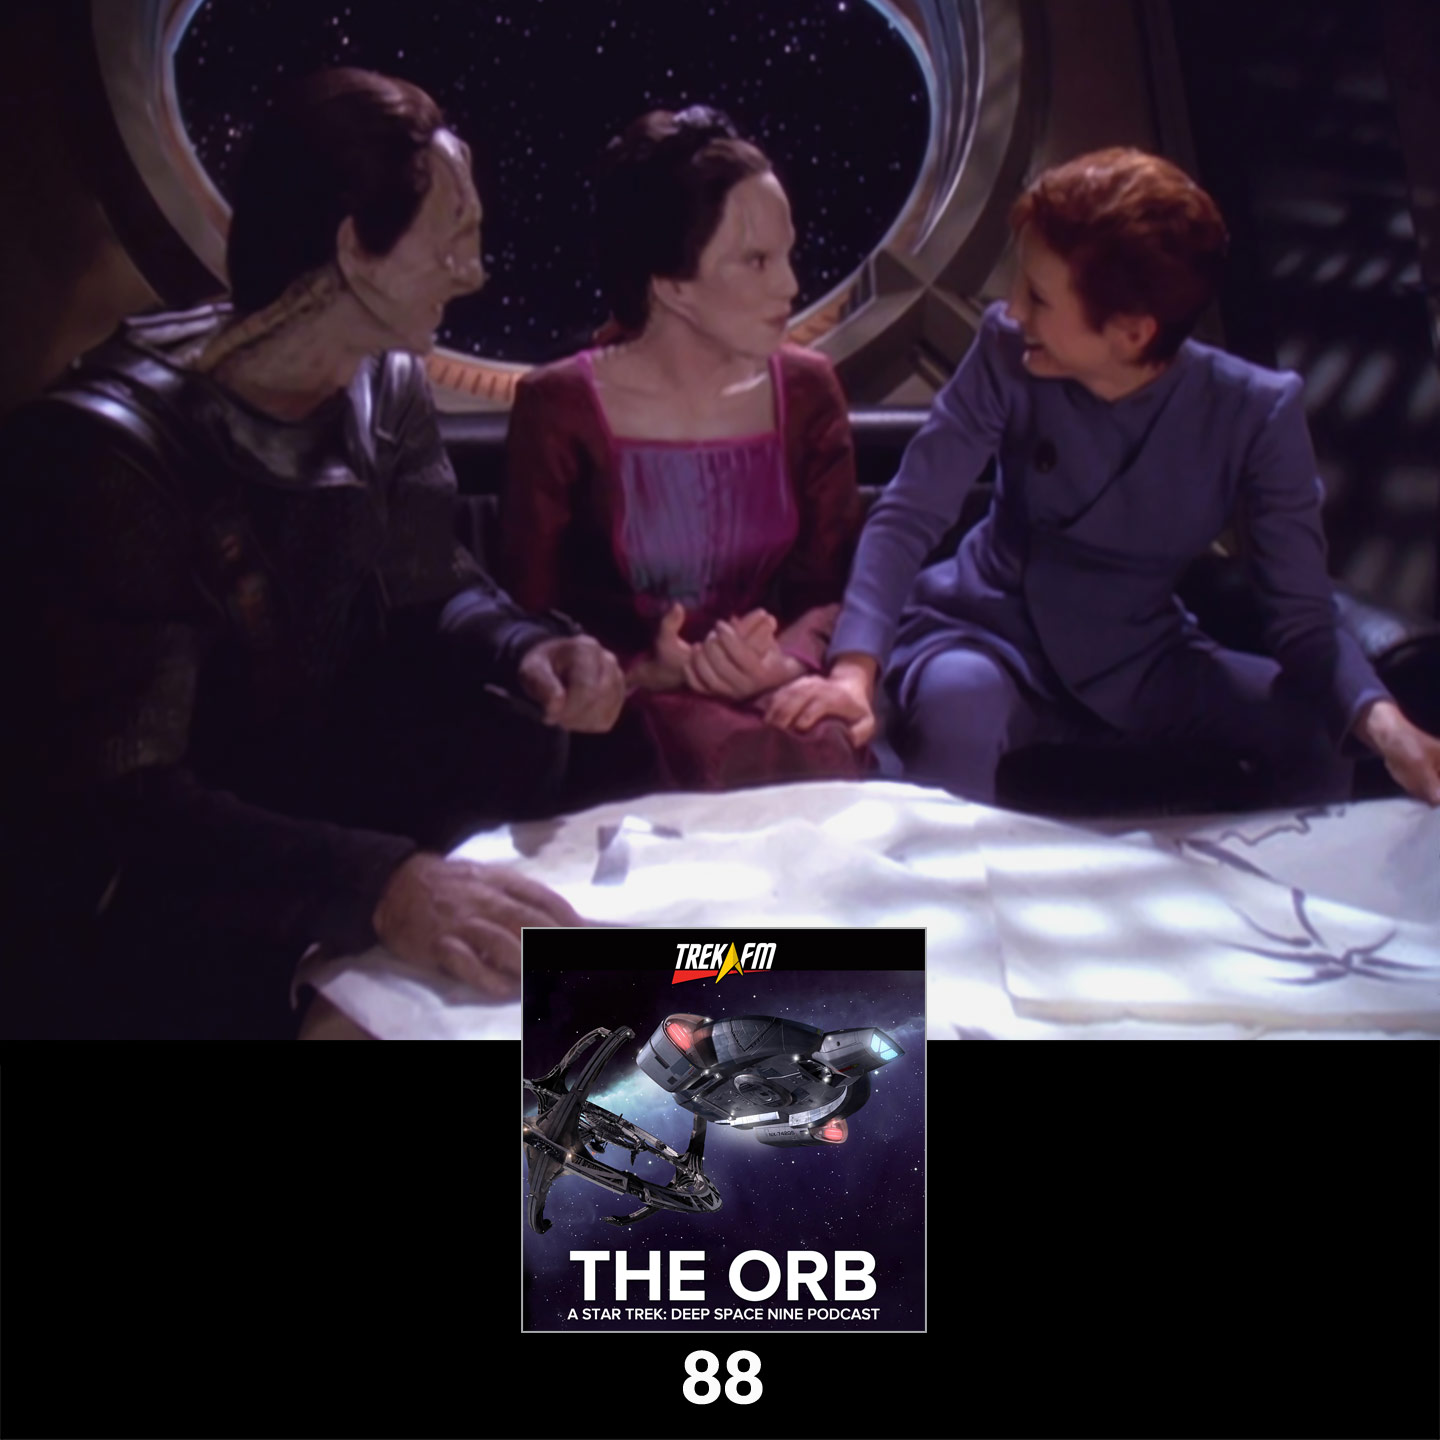 The Orb 88: The Muddiness Of It All